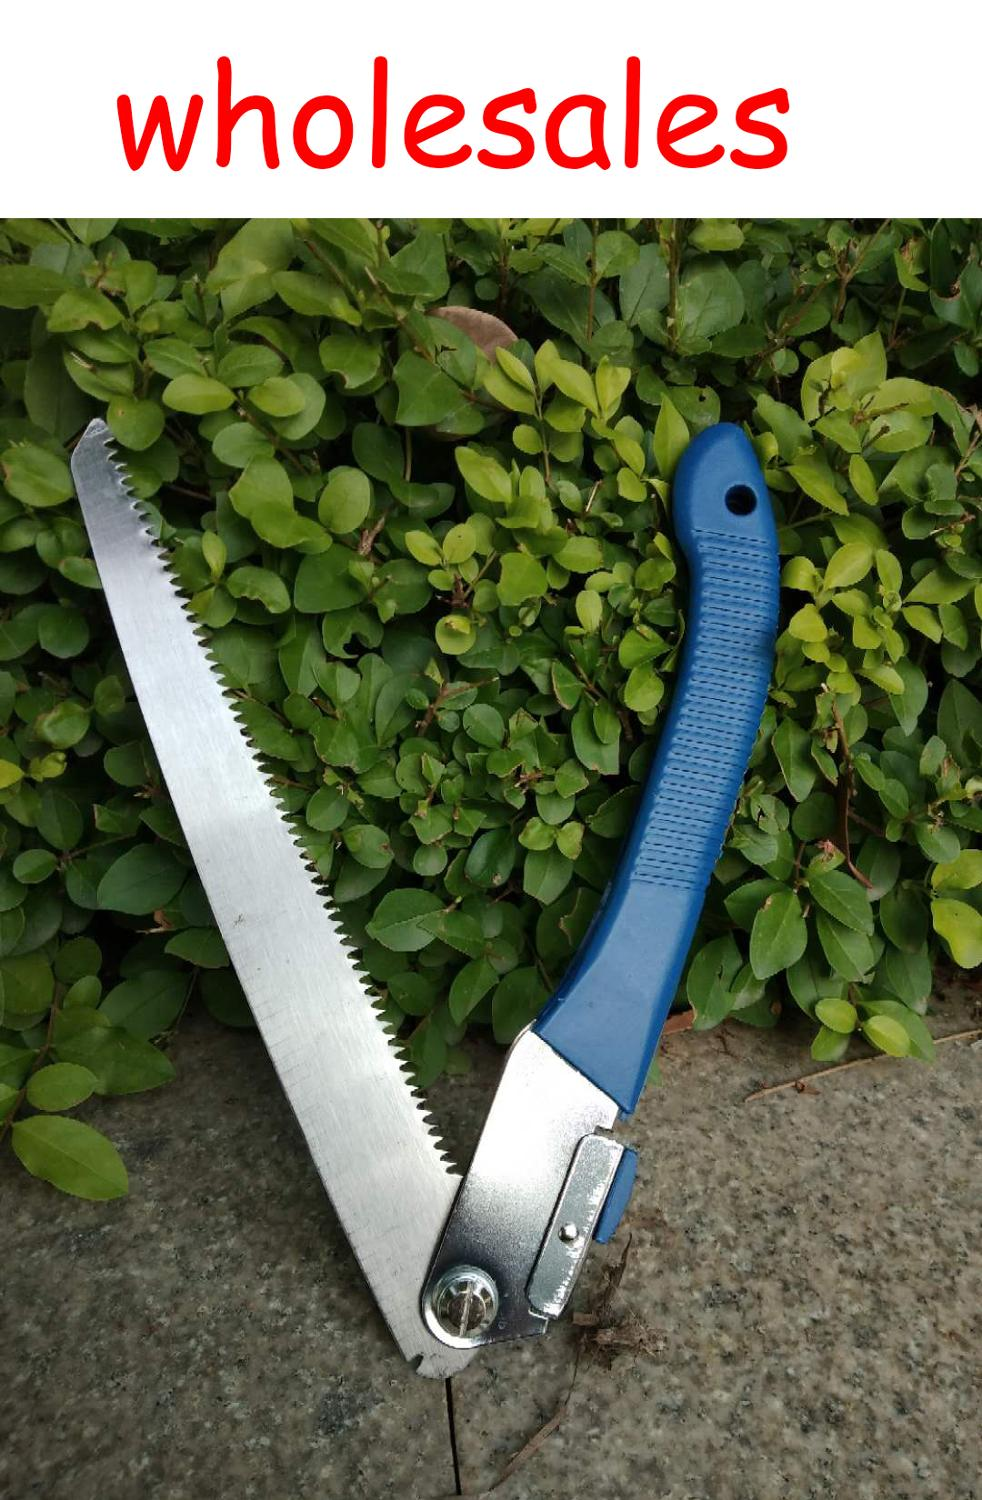 Mini Portable Garden Folding Saw Pruning Household Garden Had Steel Sawing Sawing Tools Woodworking Hacksaws Home Tool